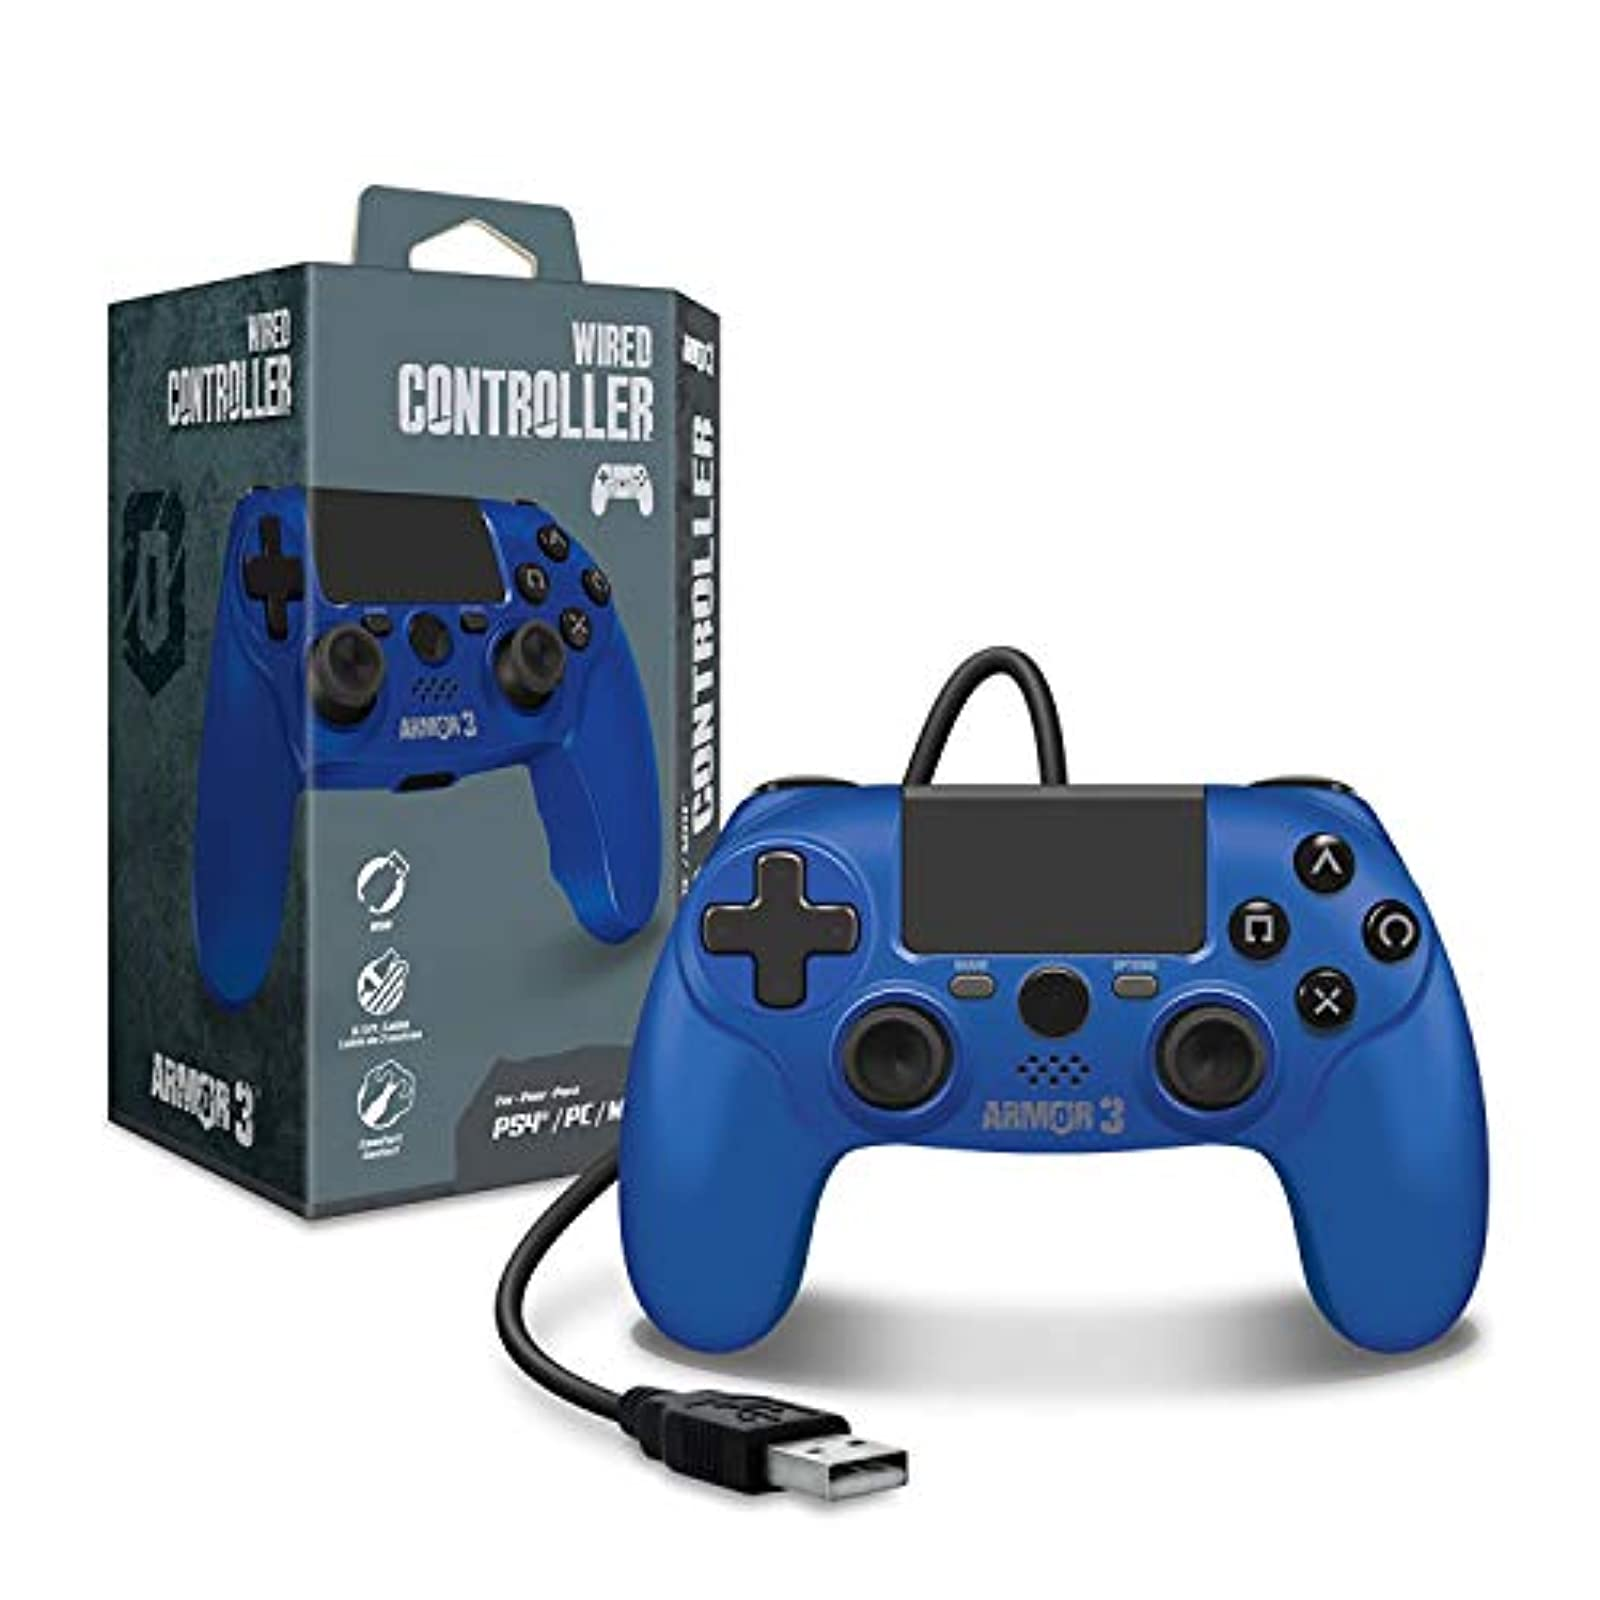 ARMOR3 Wired Game Controller For PS4/ PC/ MAC Blue For PlayStation 4